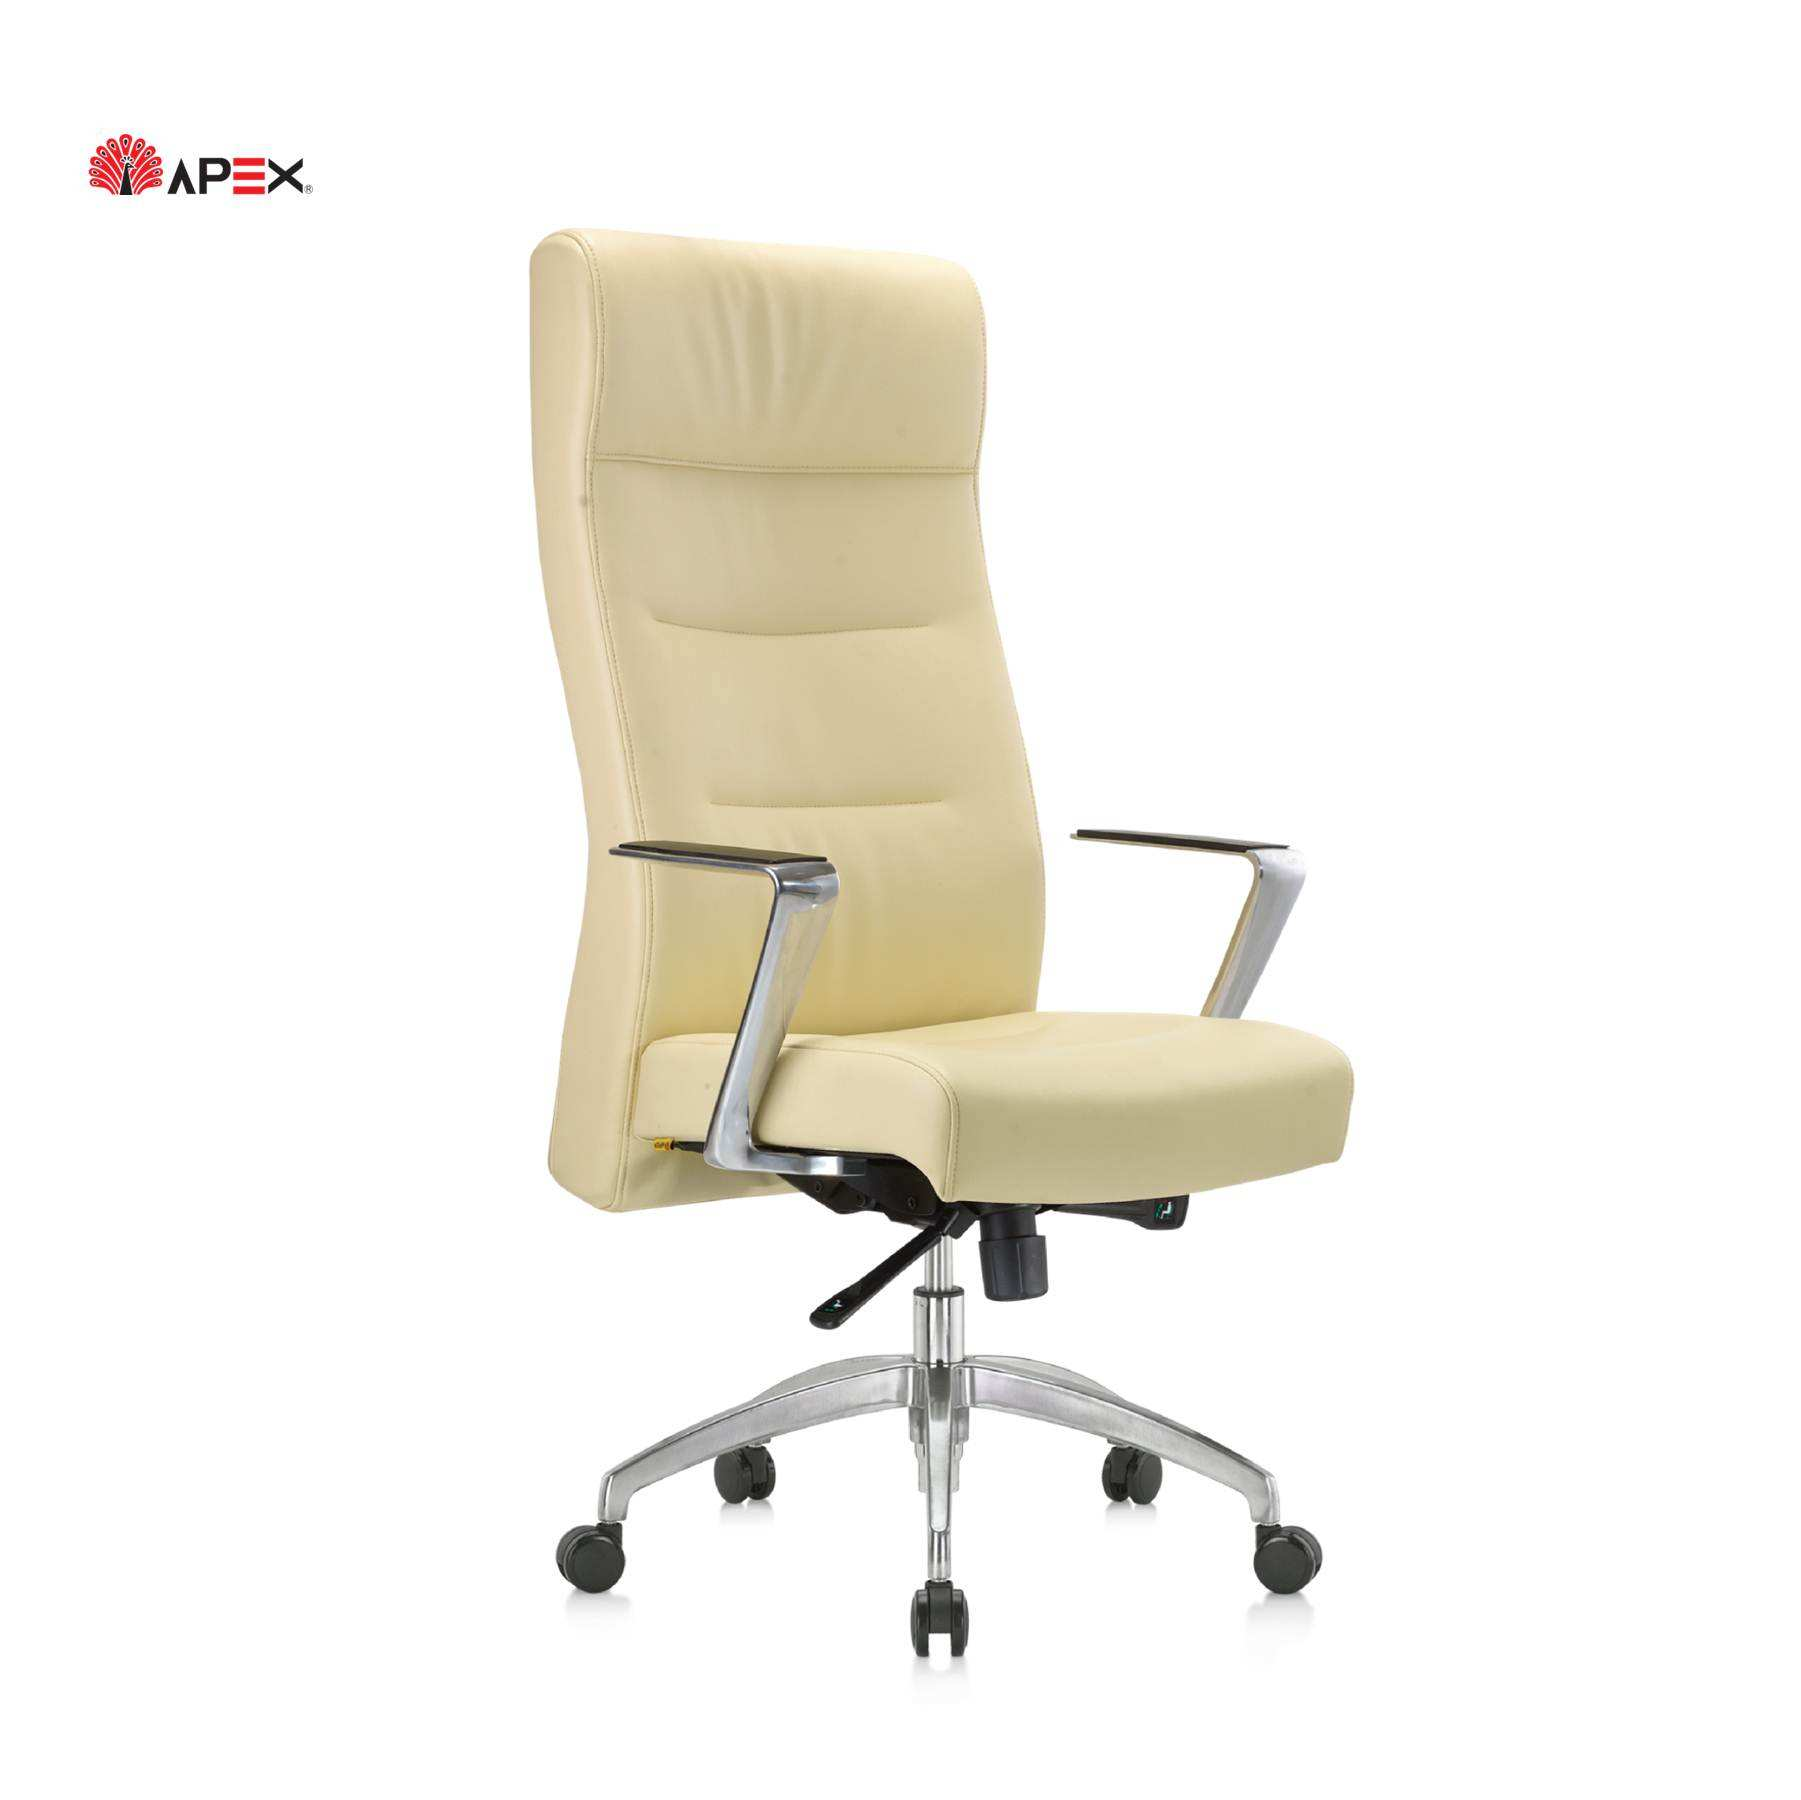 Apex Office Furniture Dibo Series High Quality Comfortable Rolling Genuine Leather Gaming Chair